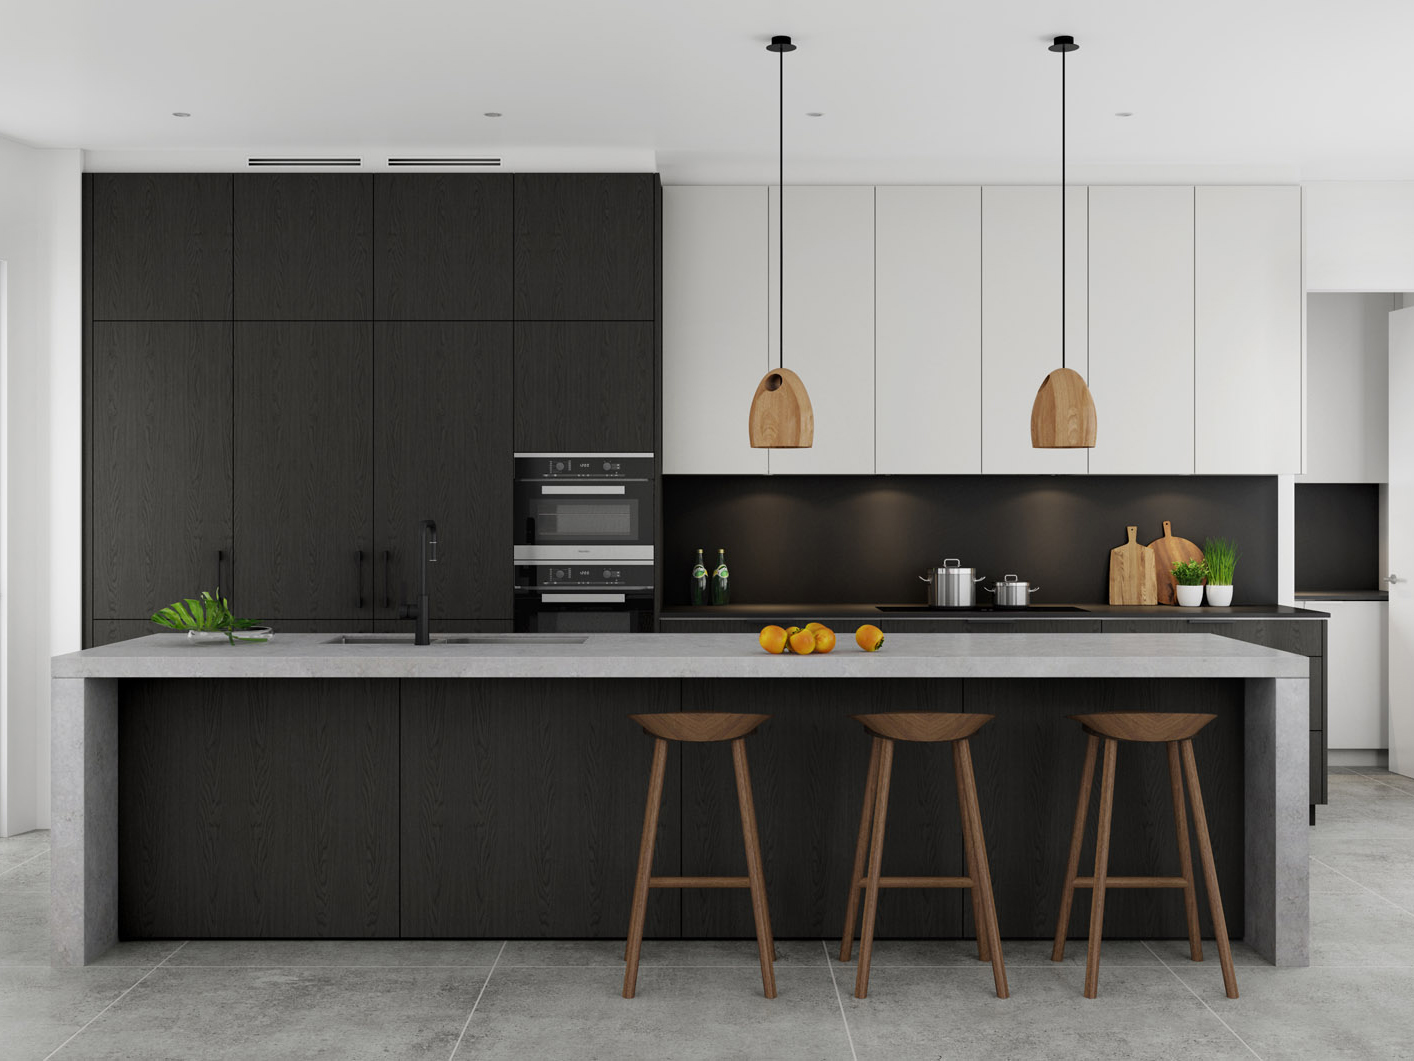 Top Kitchen Trends for 2018  realestatecomau